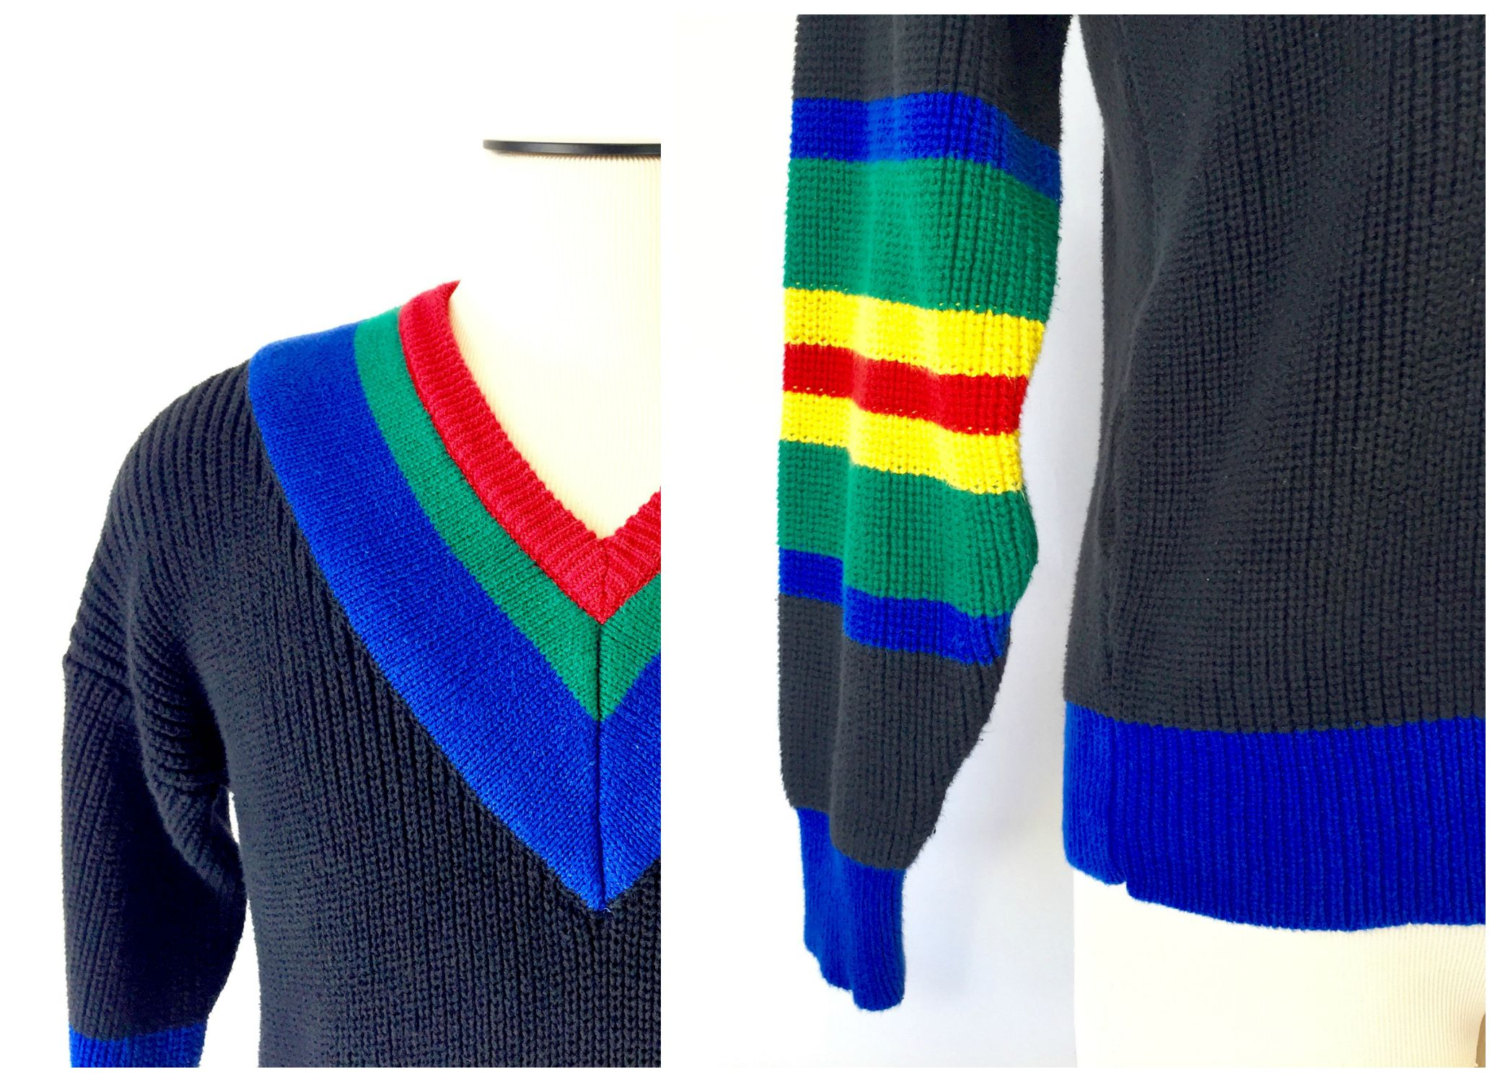 Bold color blocking on this 1980's V-neck sweater. Great vibrant blue!